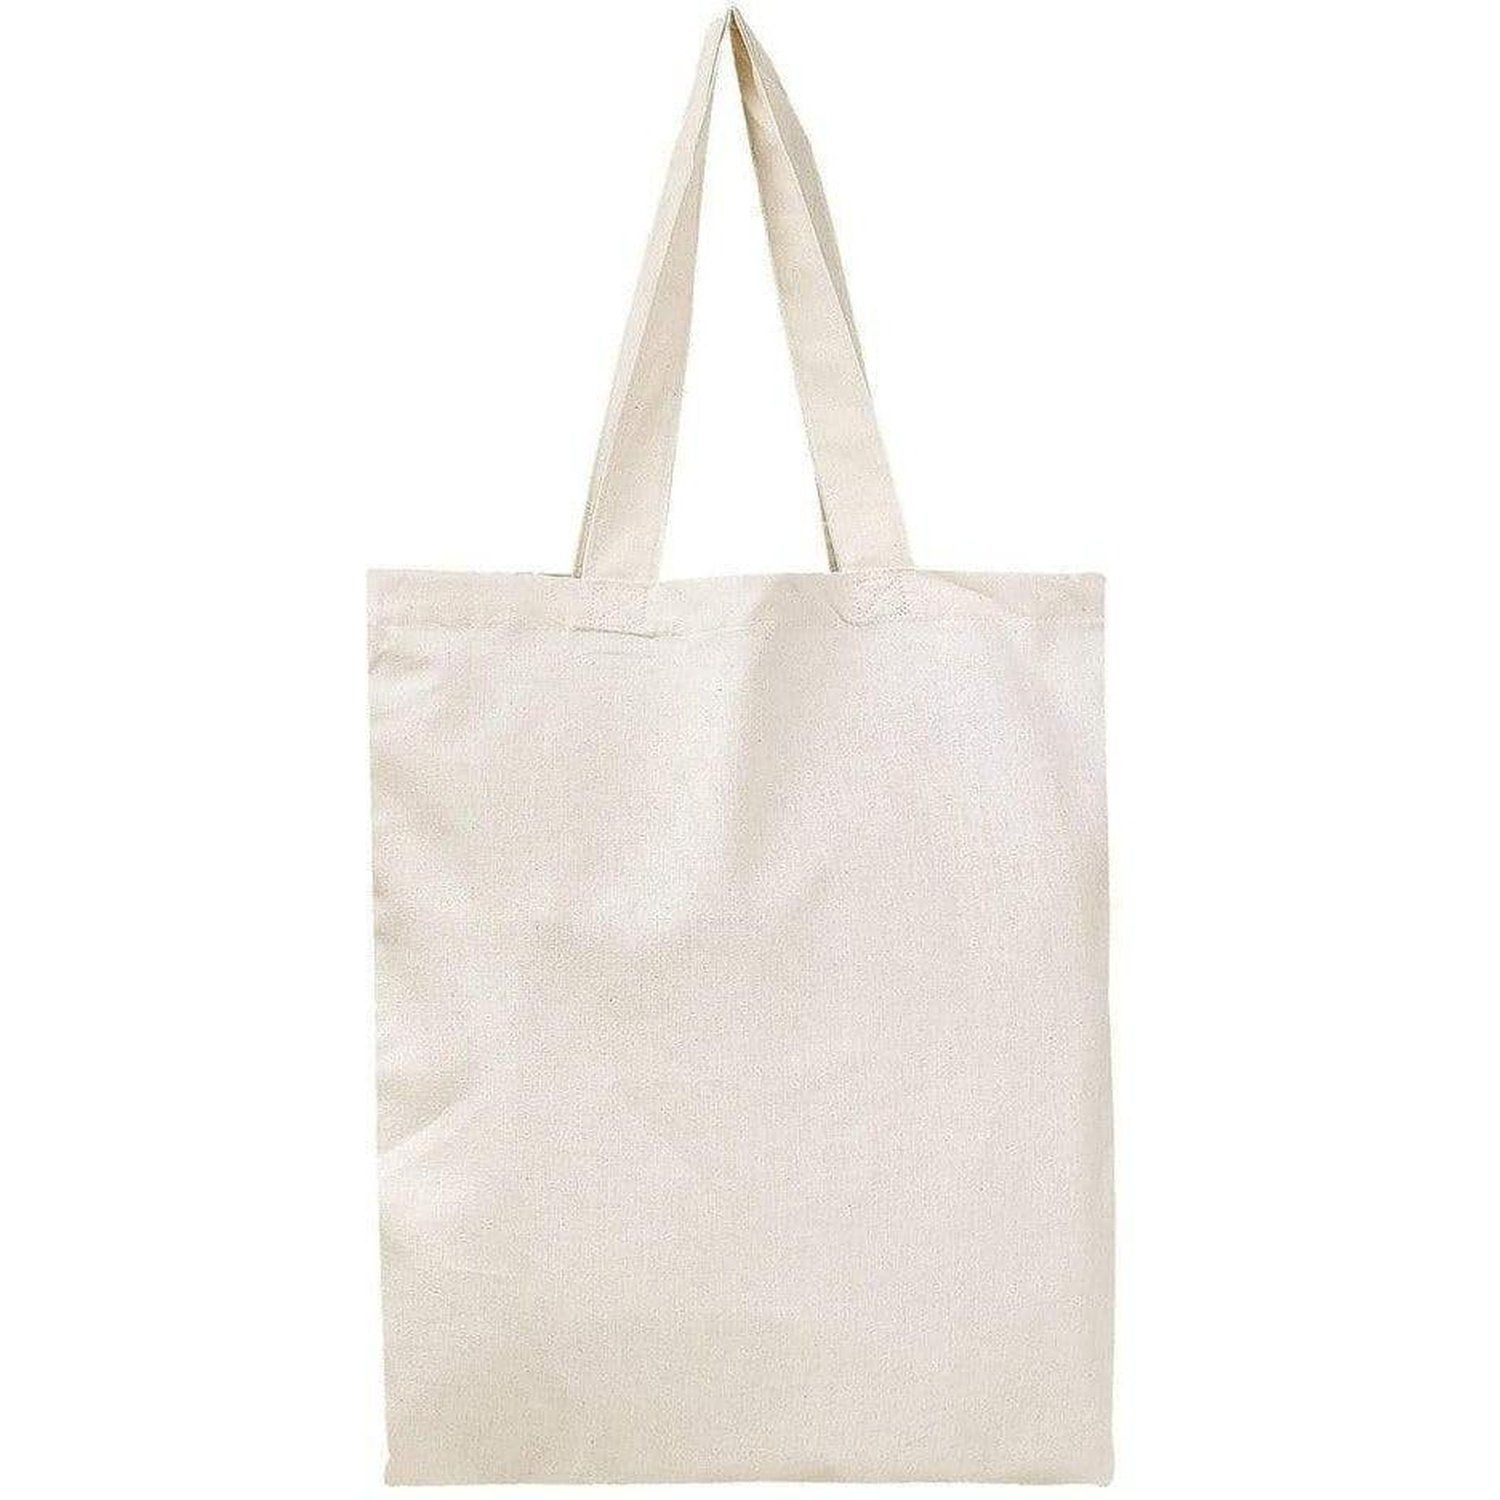 Wholesale Canvas Tote Bags With Gusset And Front Pocket Printed Tote Bags Best Tote Bags Cheap Tote Bags